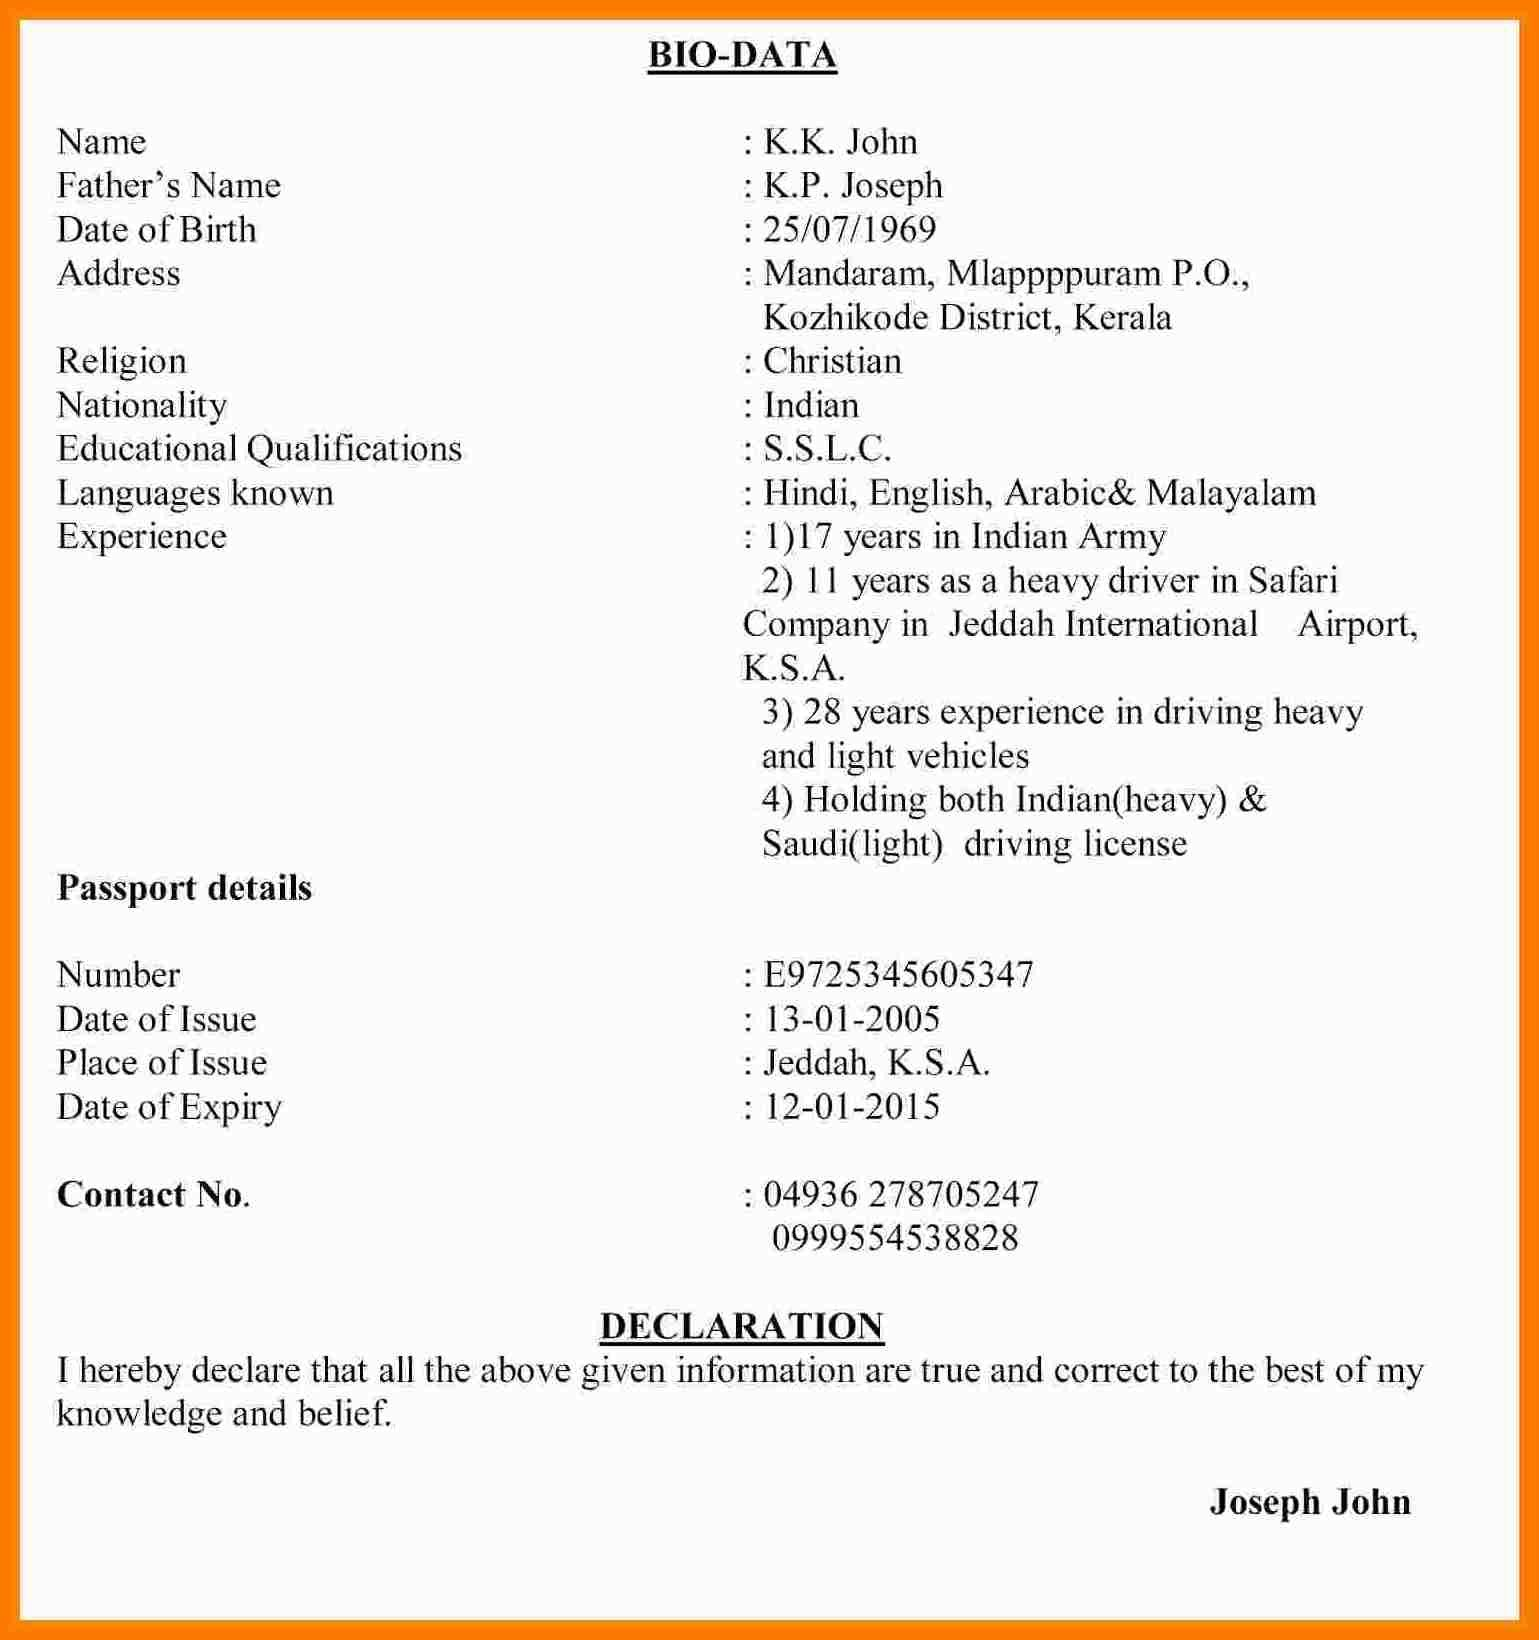 Image Result For Biodata Format For Marriage Pdf Free Download